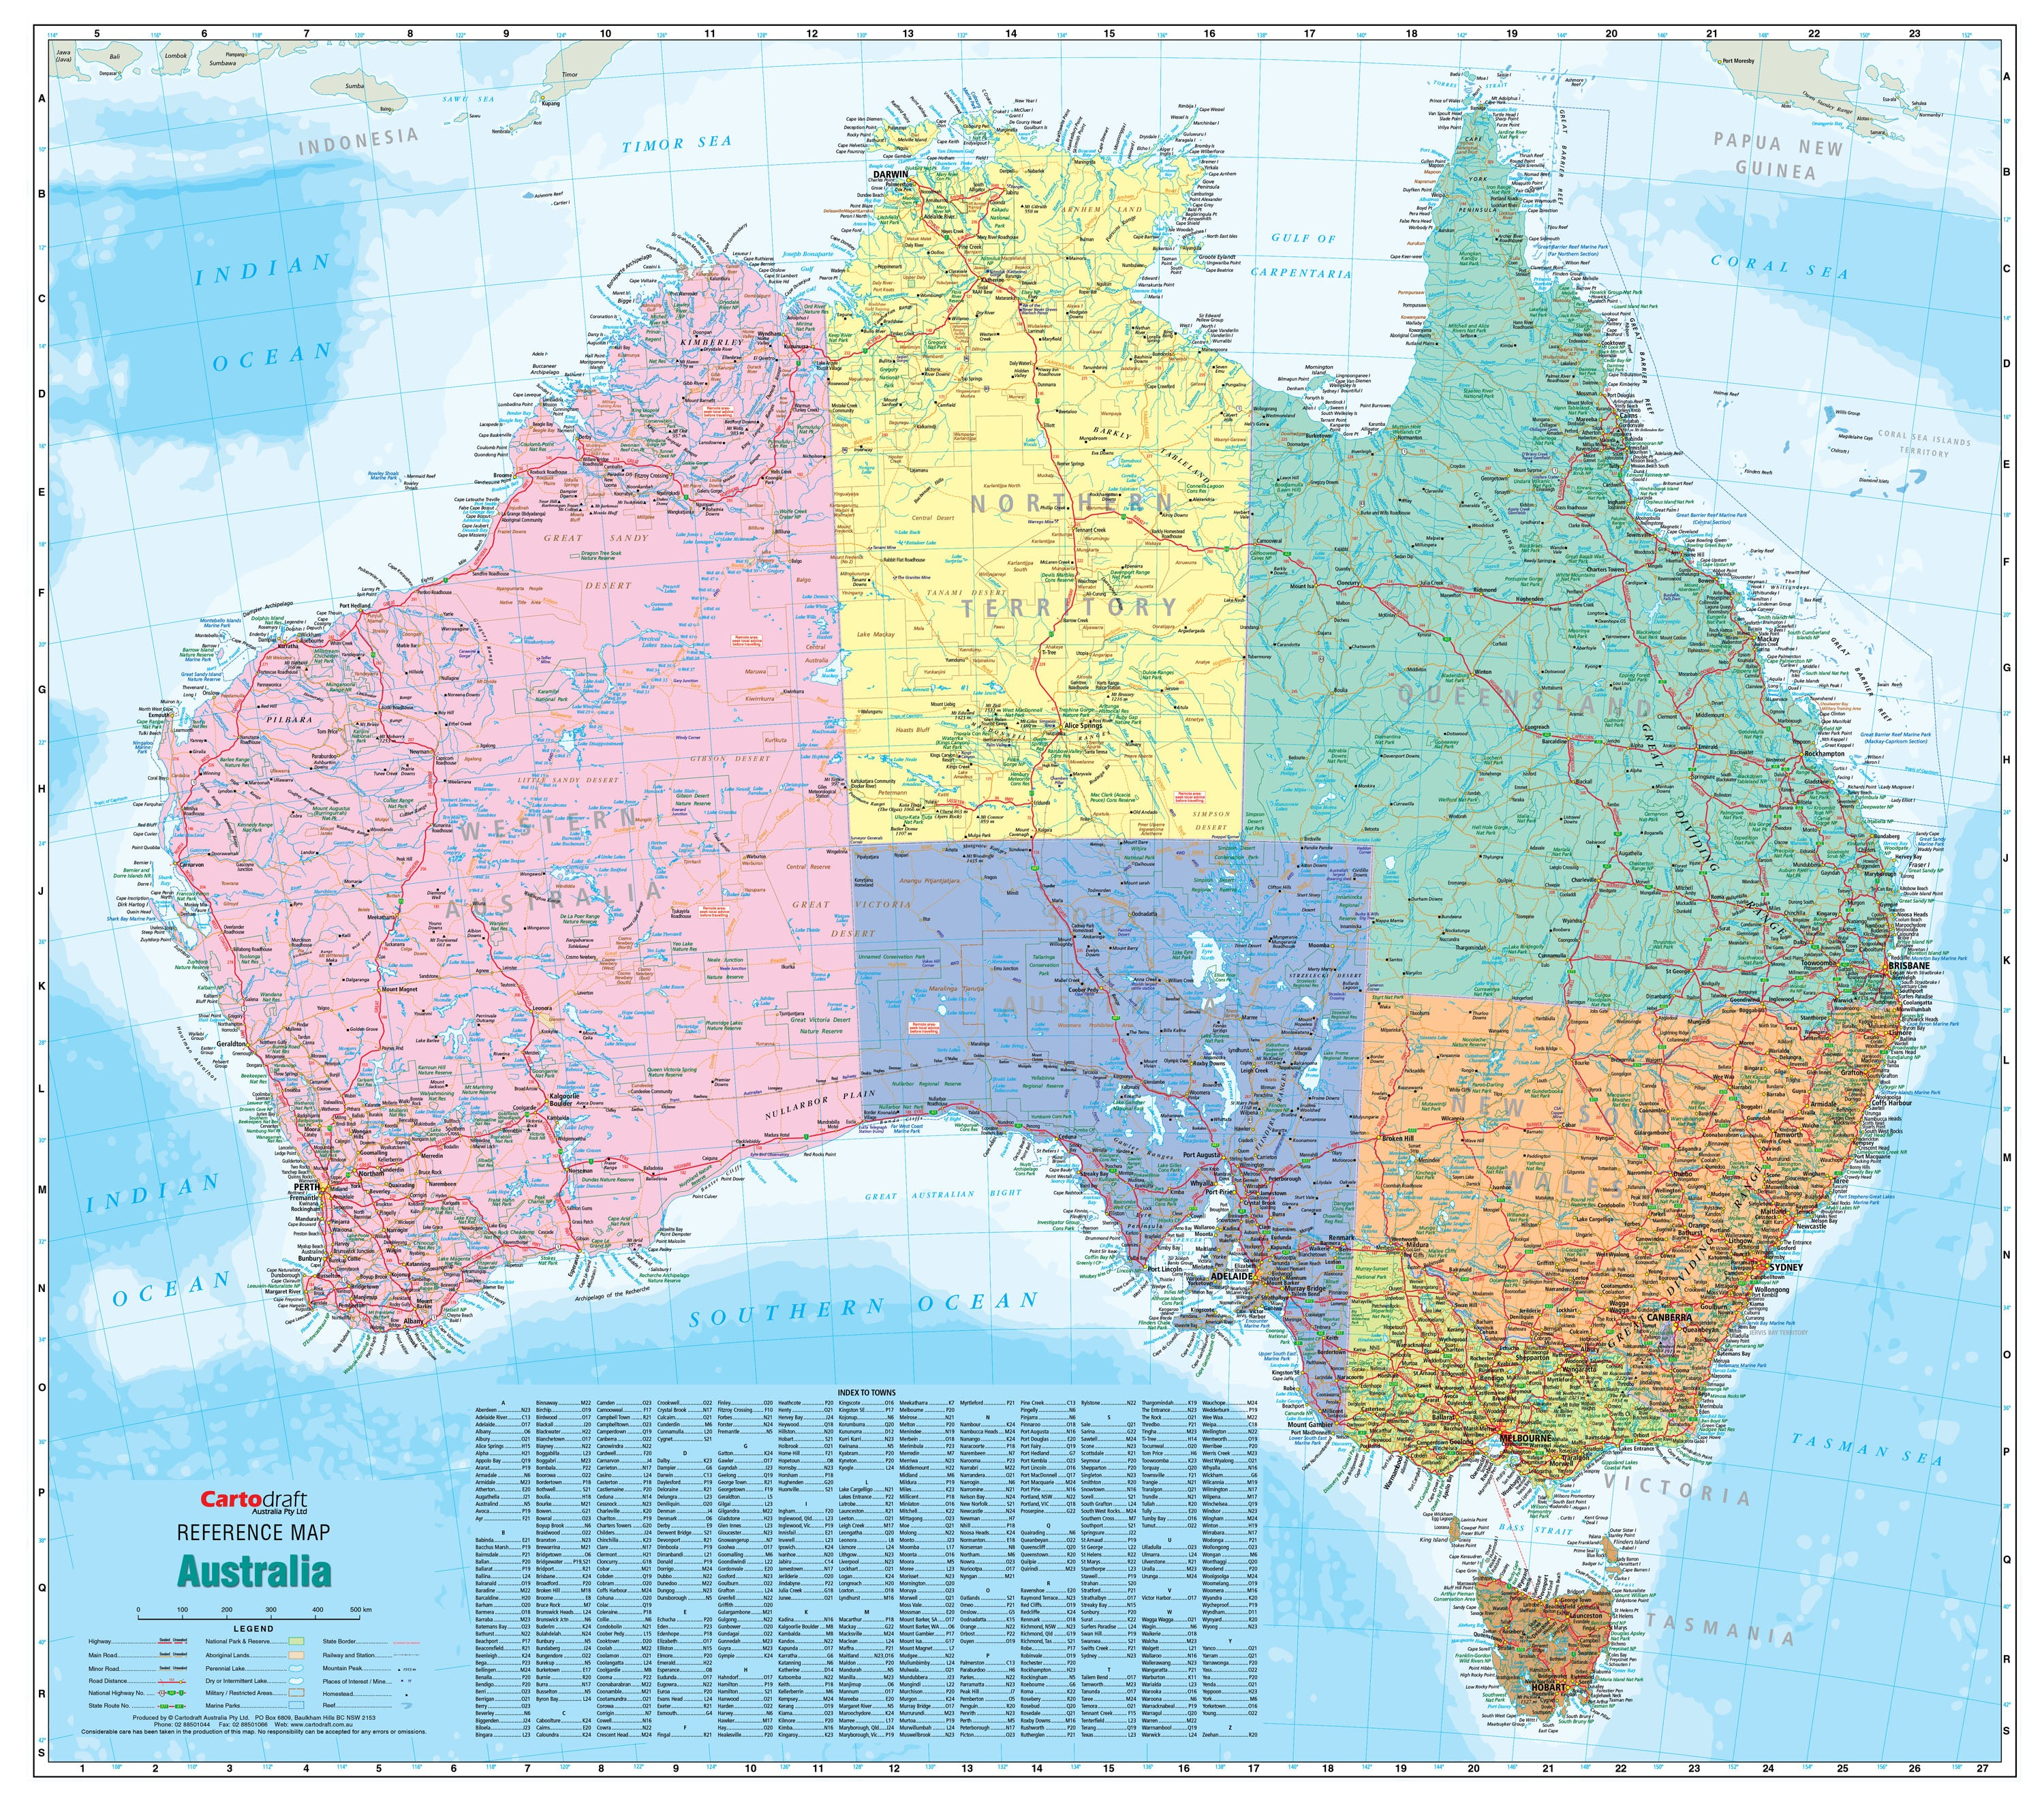 Australia Political Reference 1680 x 1480mm Laminated Wall Map